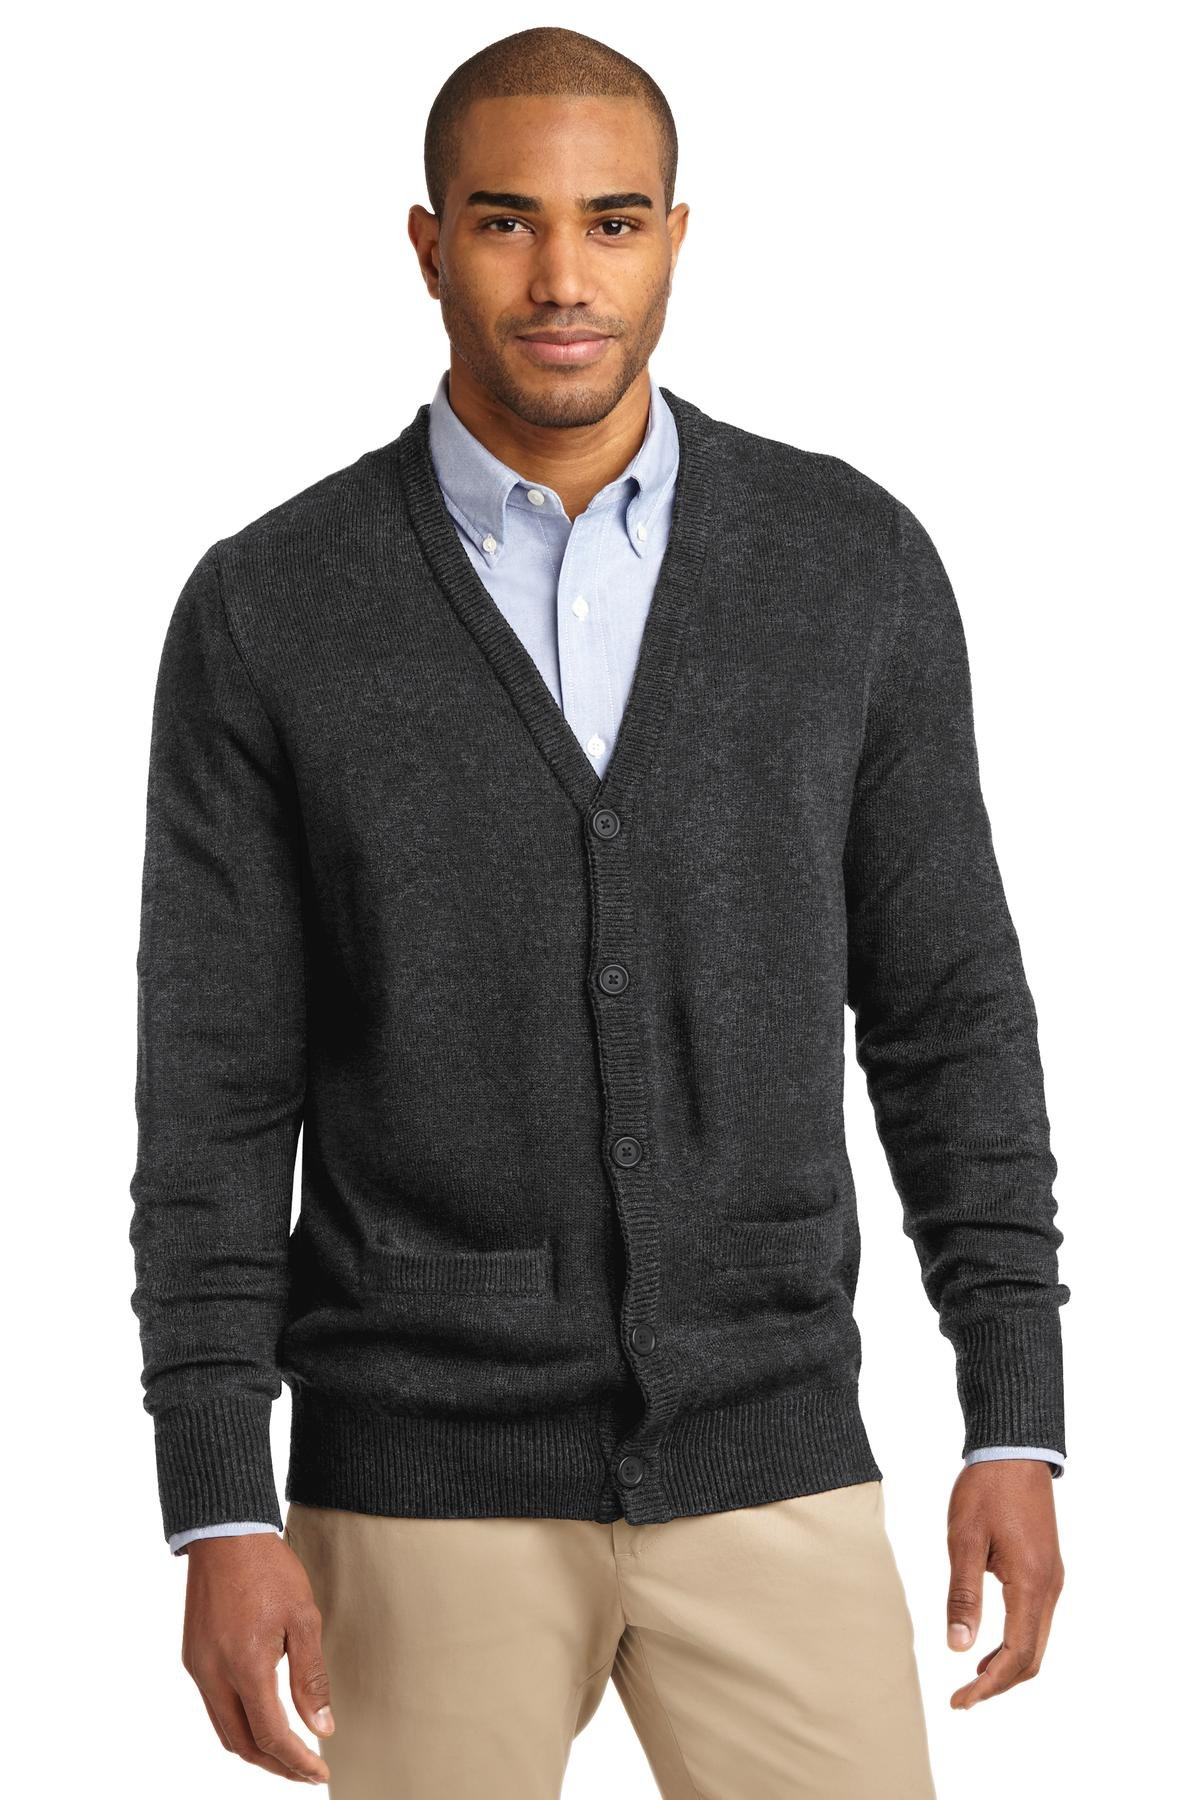 Port Authority Men's Value V Neck Cardigan Sweater with Pockets L Charcoal Grey by Port Authority